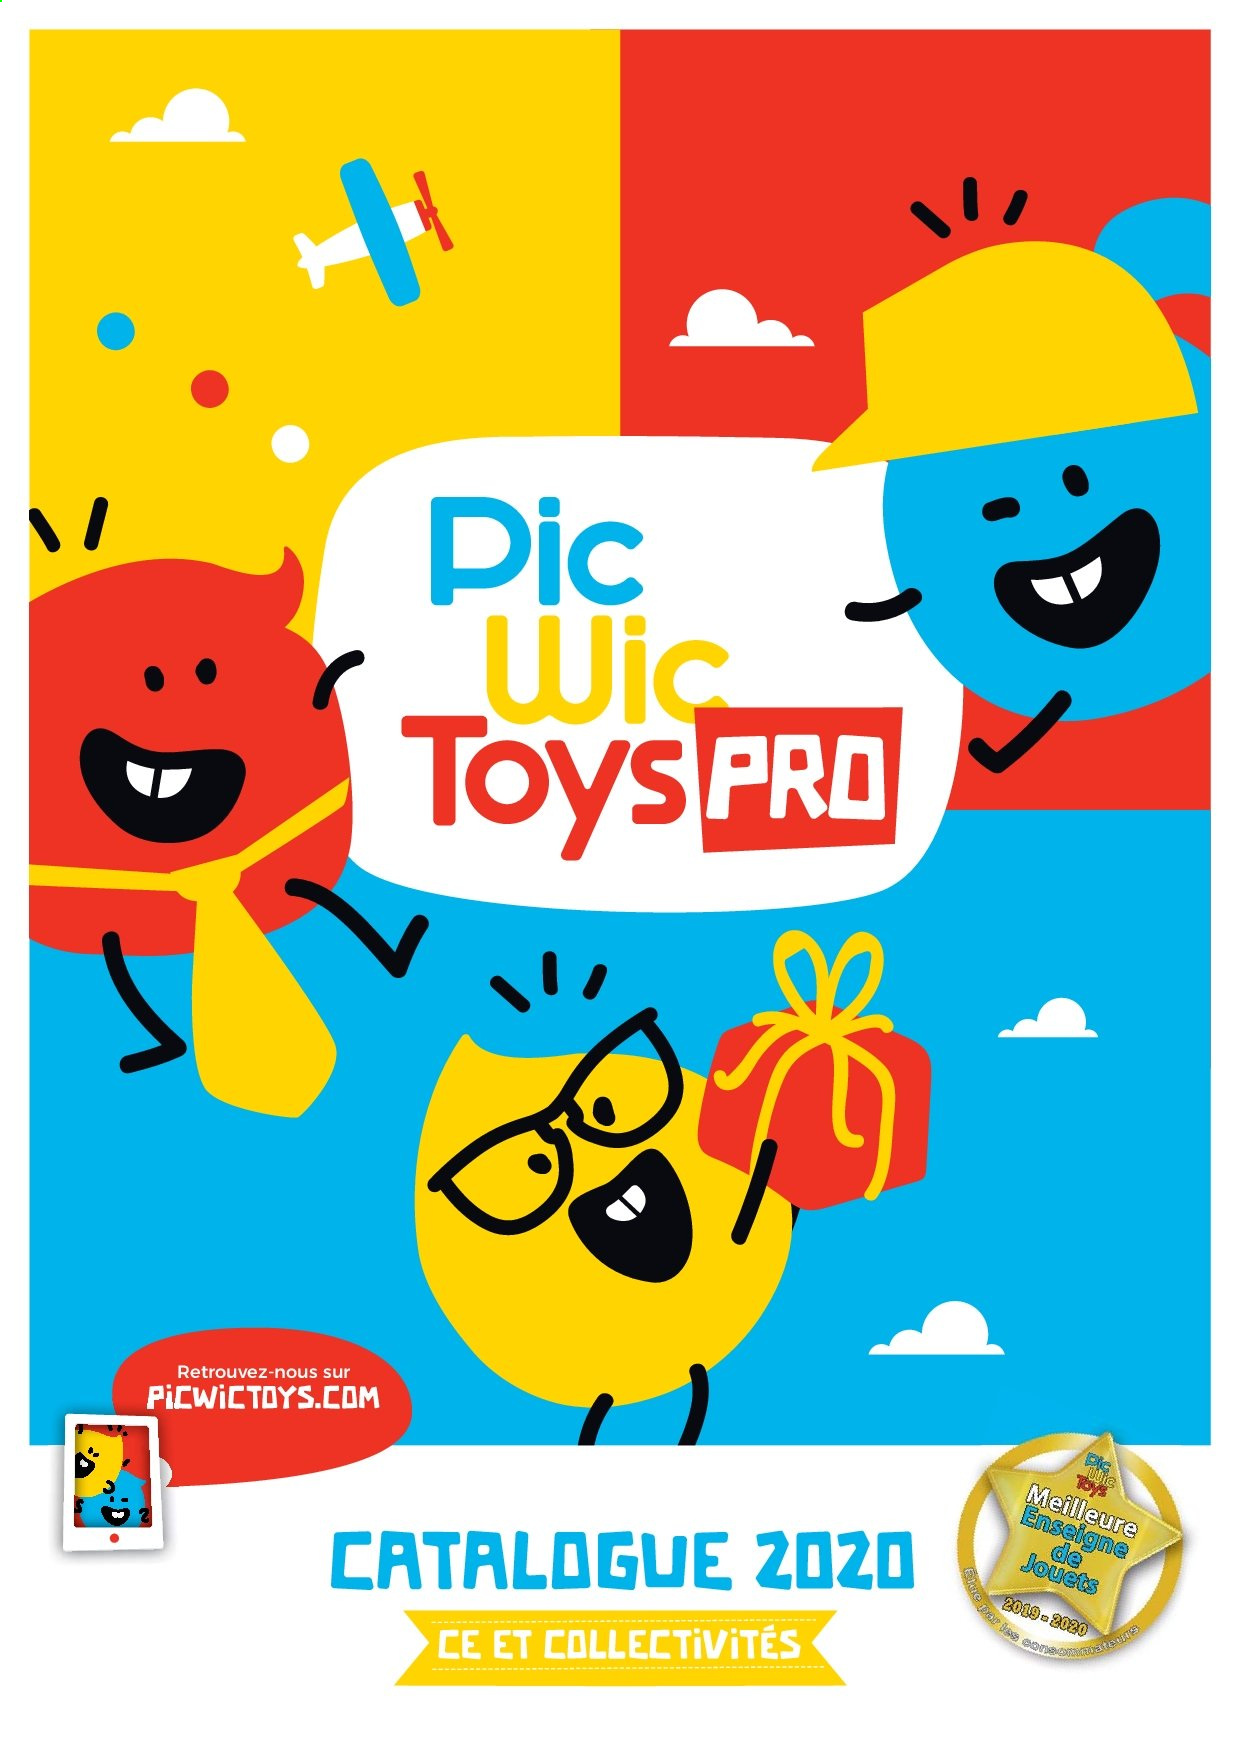 Catalogue PicWicToys. Page 1.